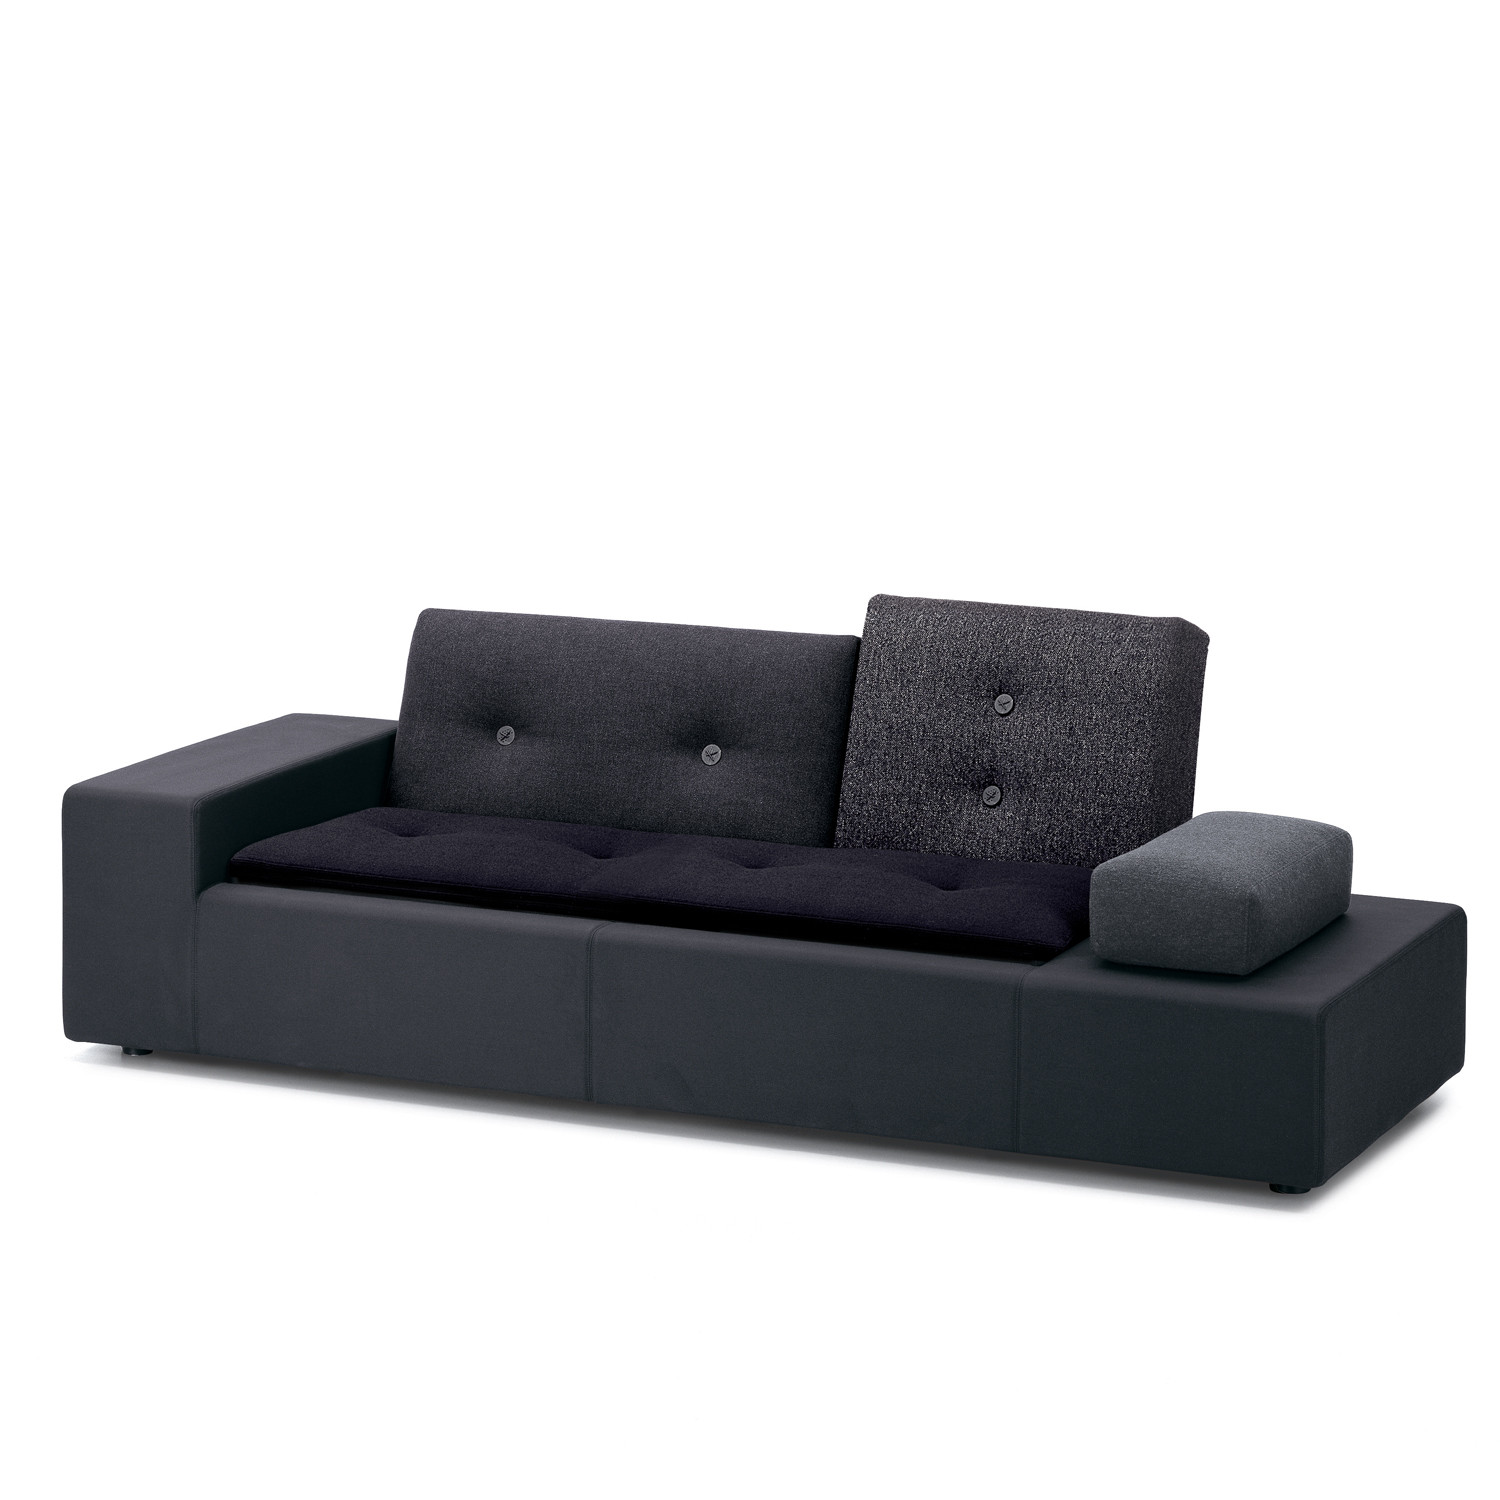 Polder Soft Seating with 5 colour combinations